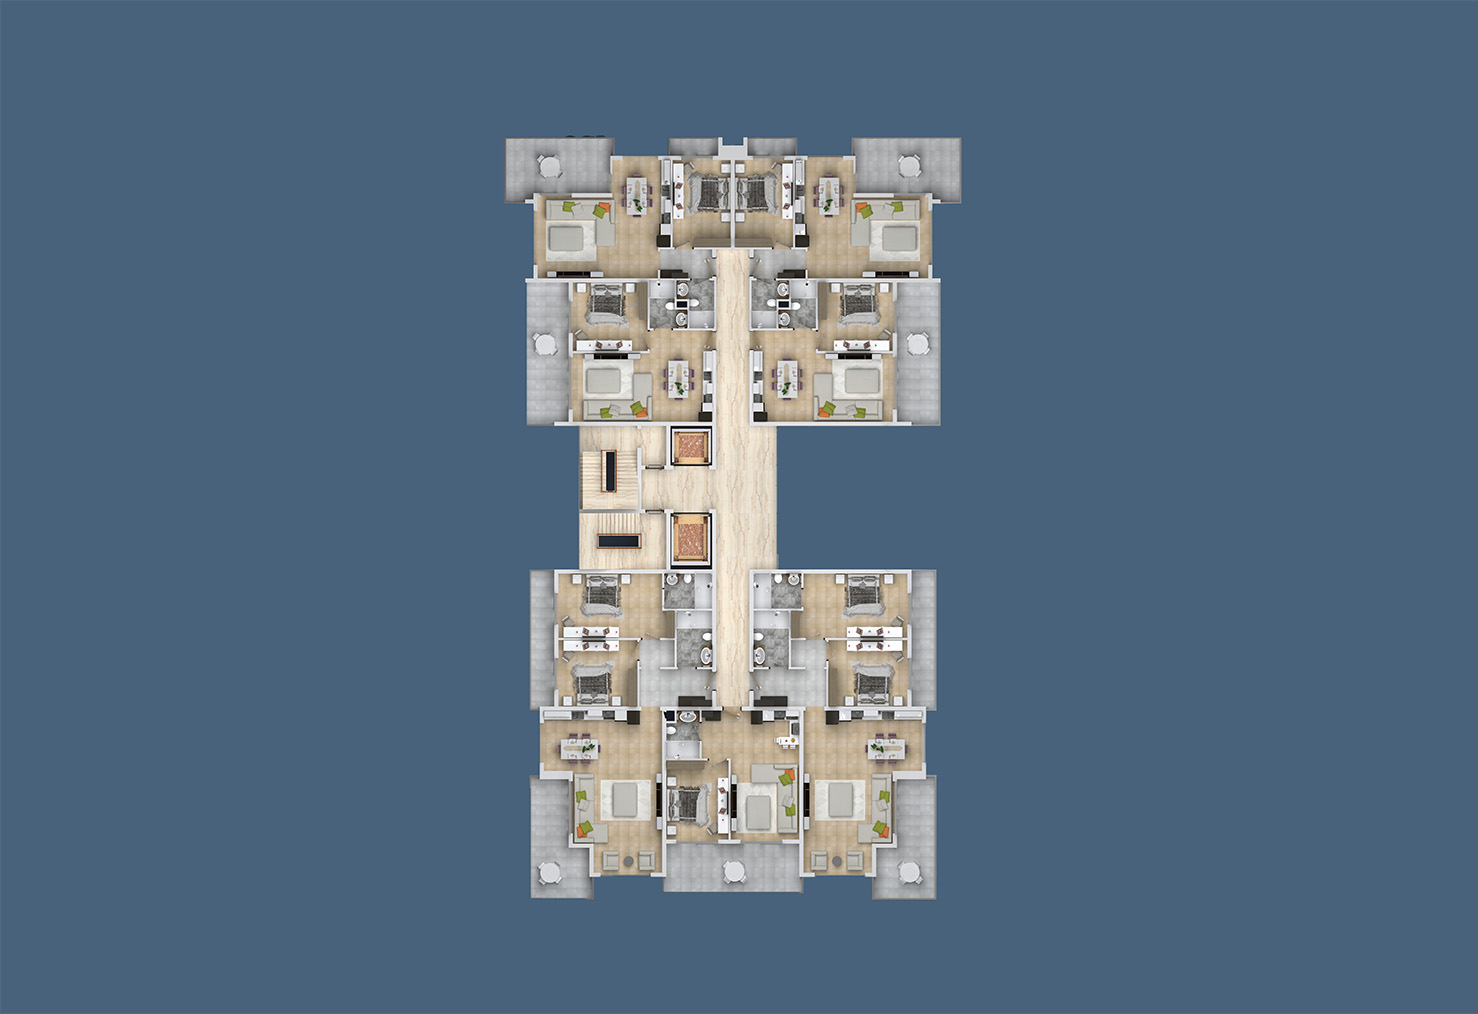 Floor plans of apartments 8 floor «B» Yekta Kingdom Trade Center